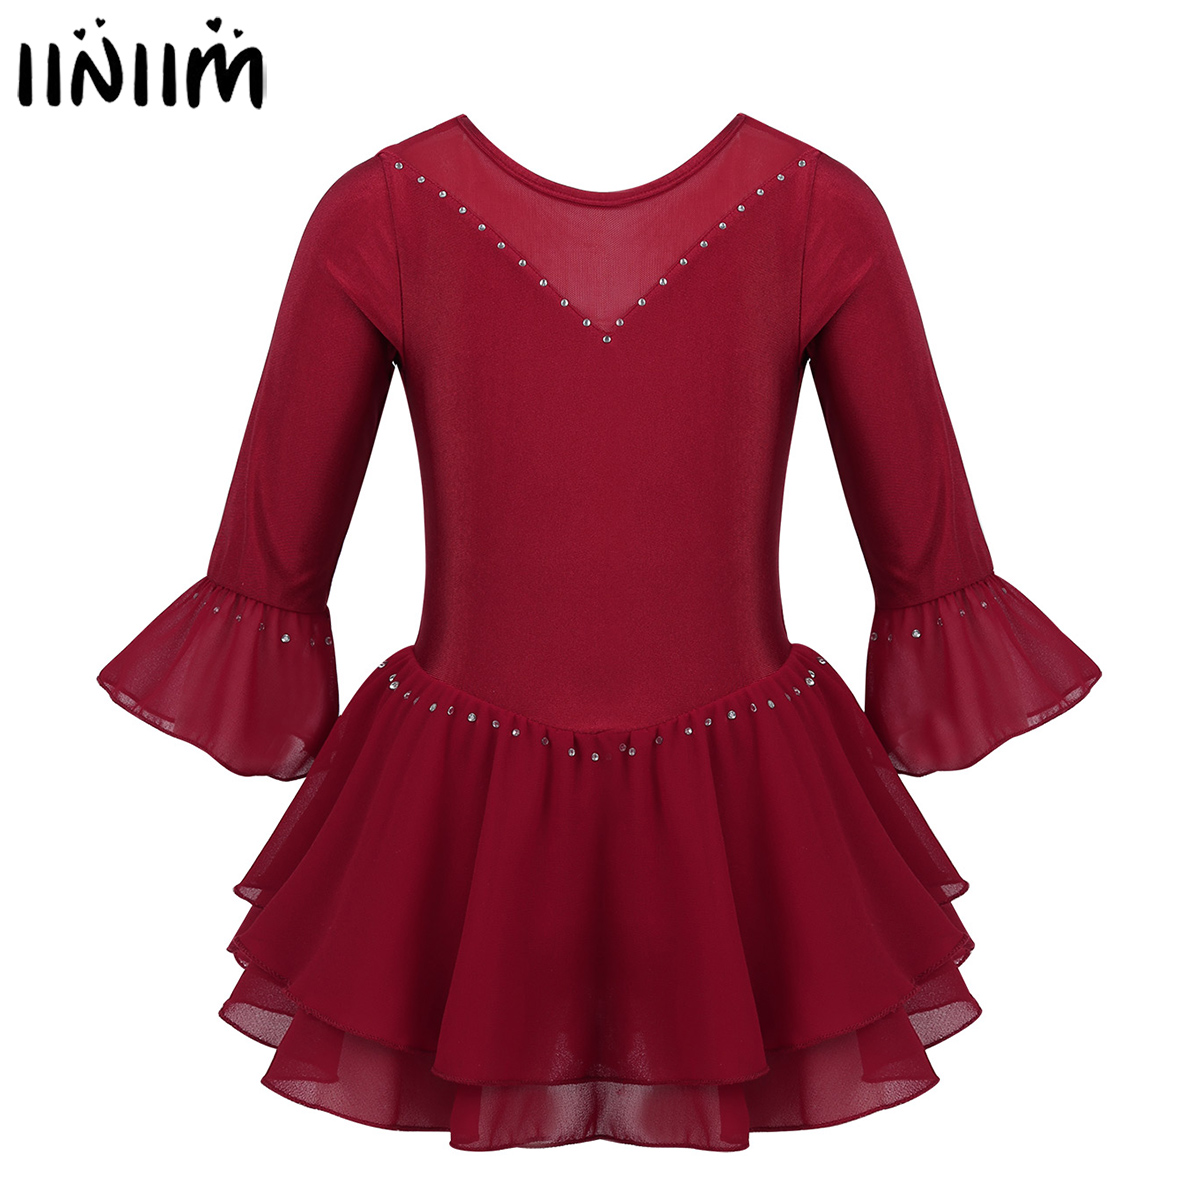 Kids Girls Gymnastics Dancewear Shiny Flare Sleeves Rhinestone Figure Skating Dress Ice Skating Ballroom Dance Competition Dress